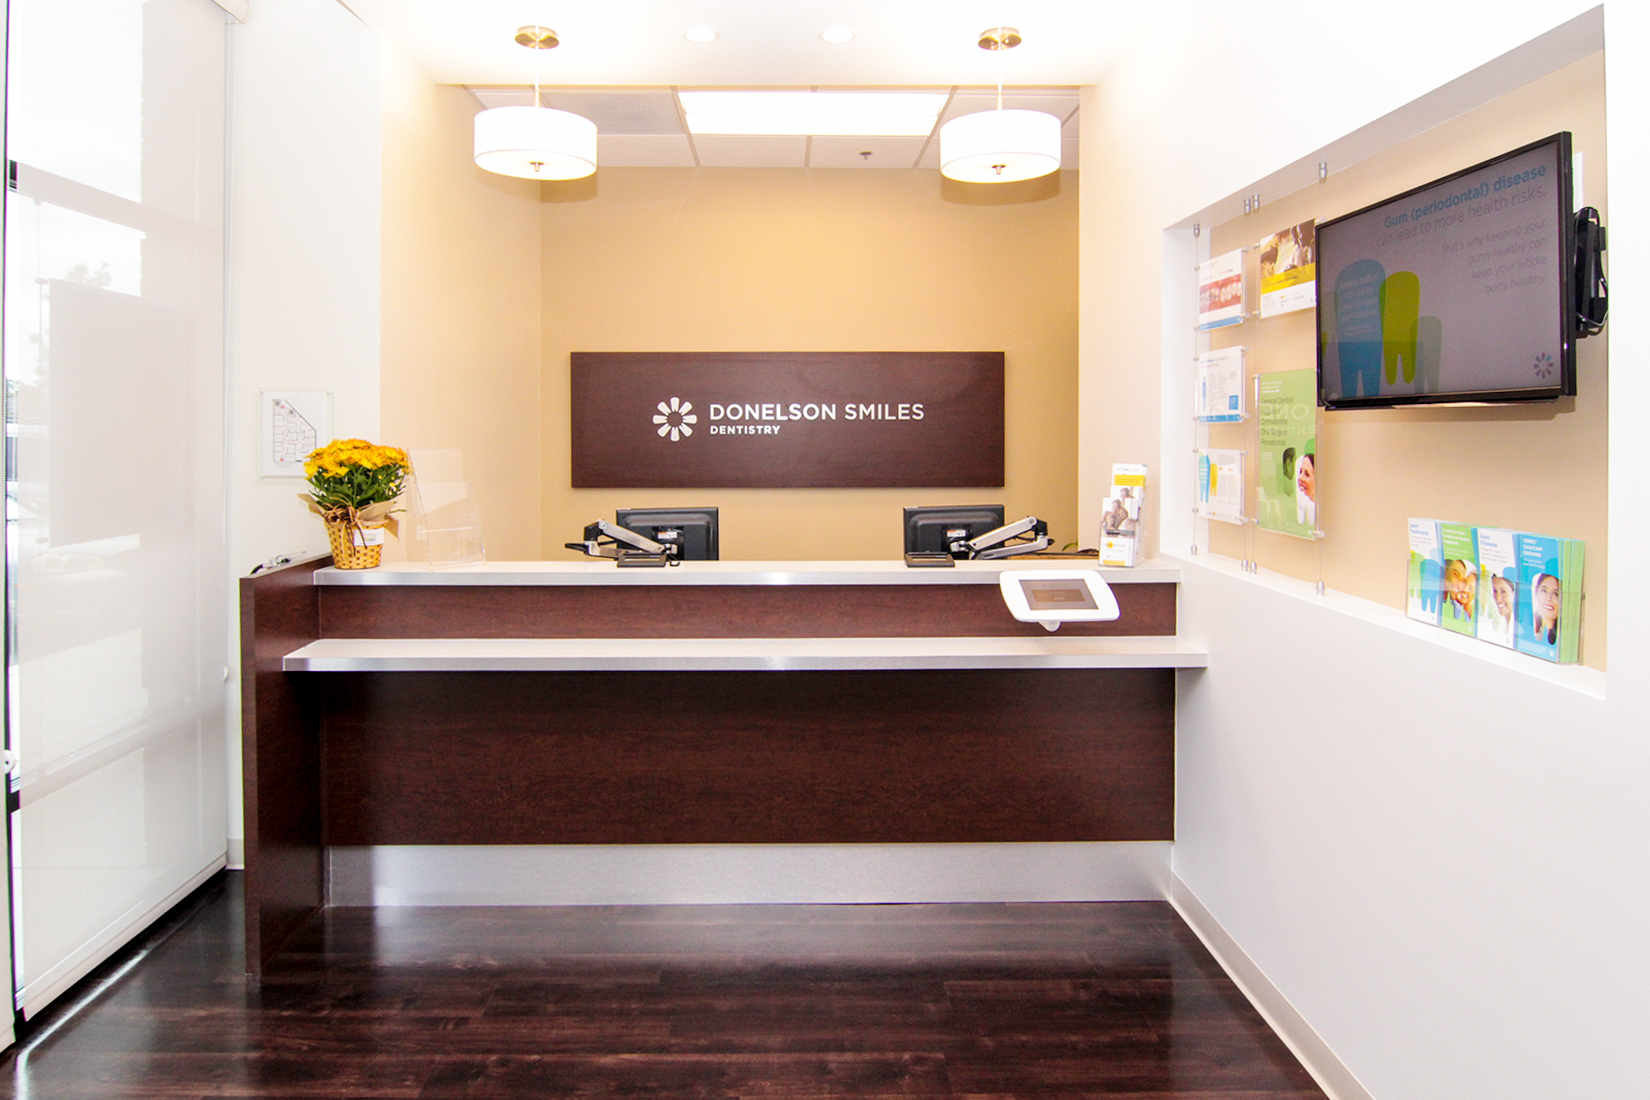 Donelson Smiles Dentistry image 1